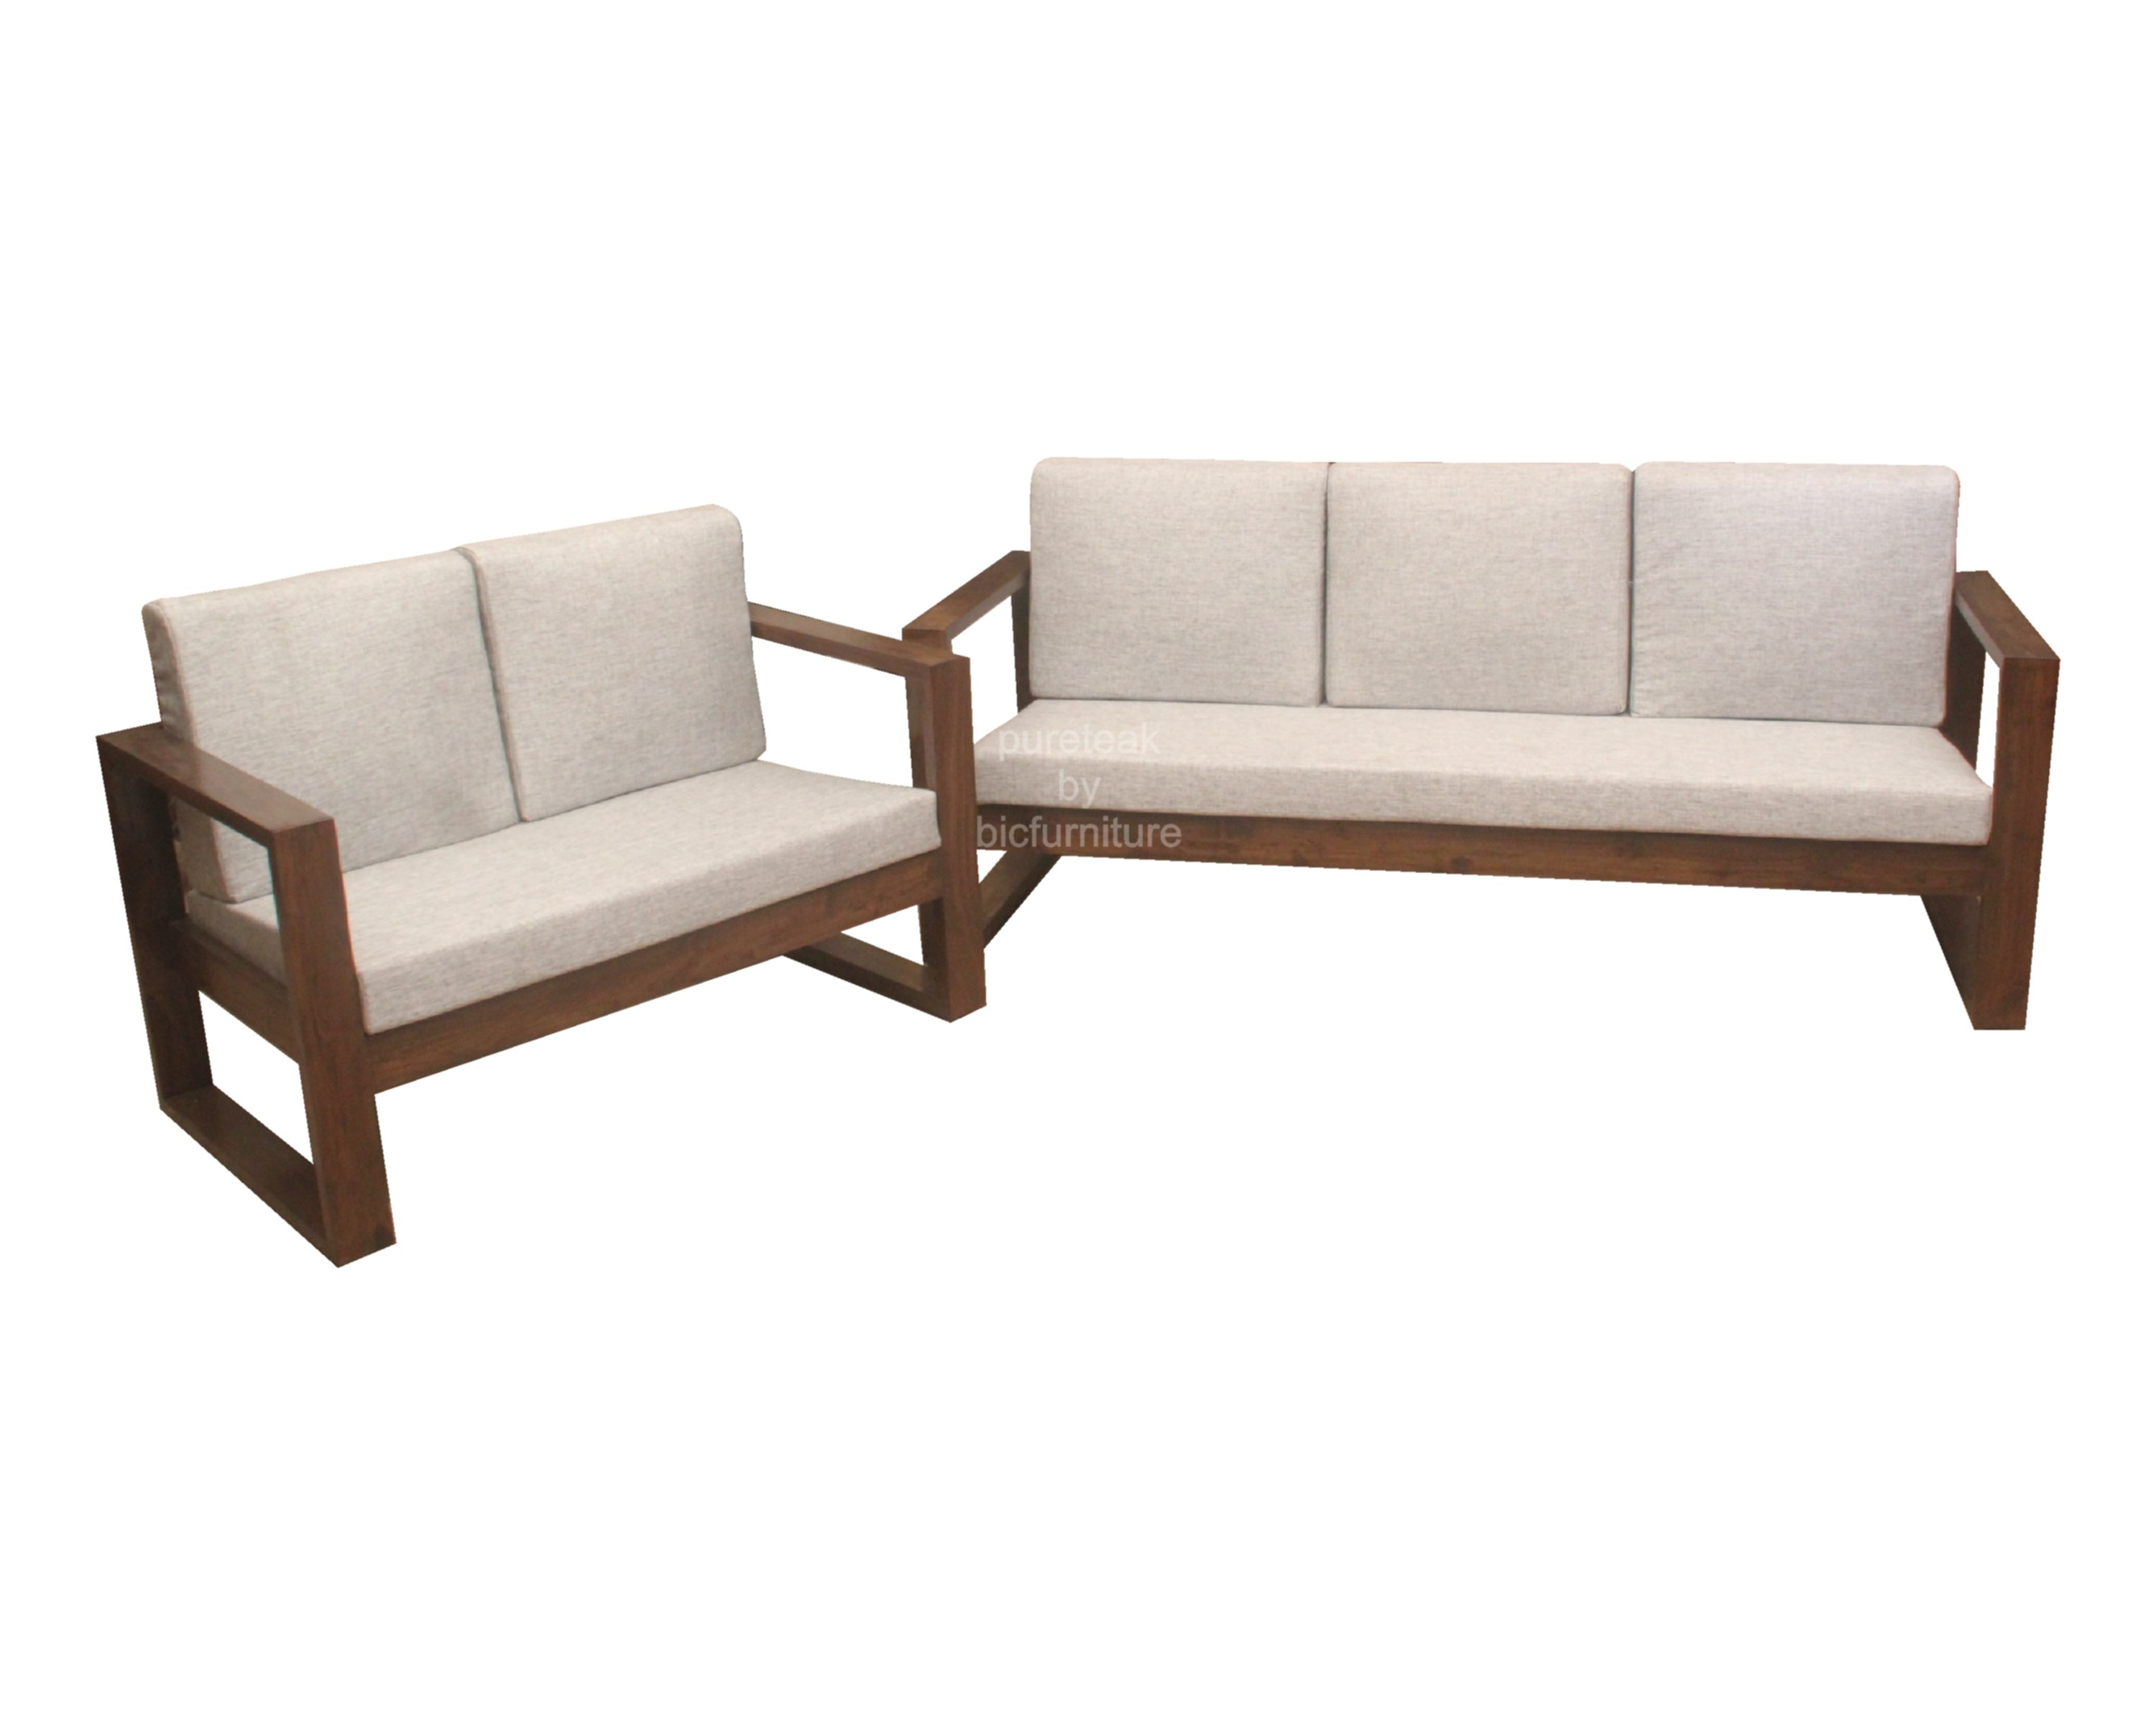 Front View Of 3 Seater Sofa In Teak With Simple Strip Square Form Wood 2 Design